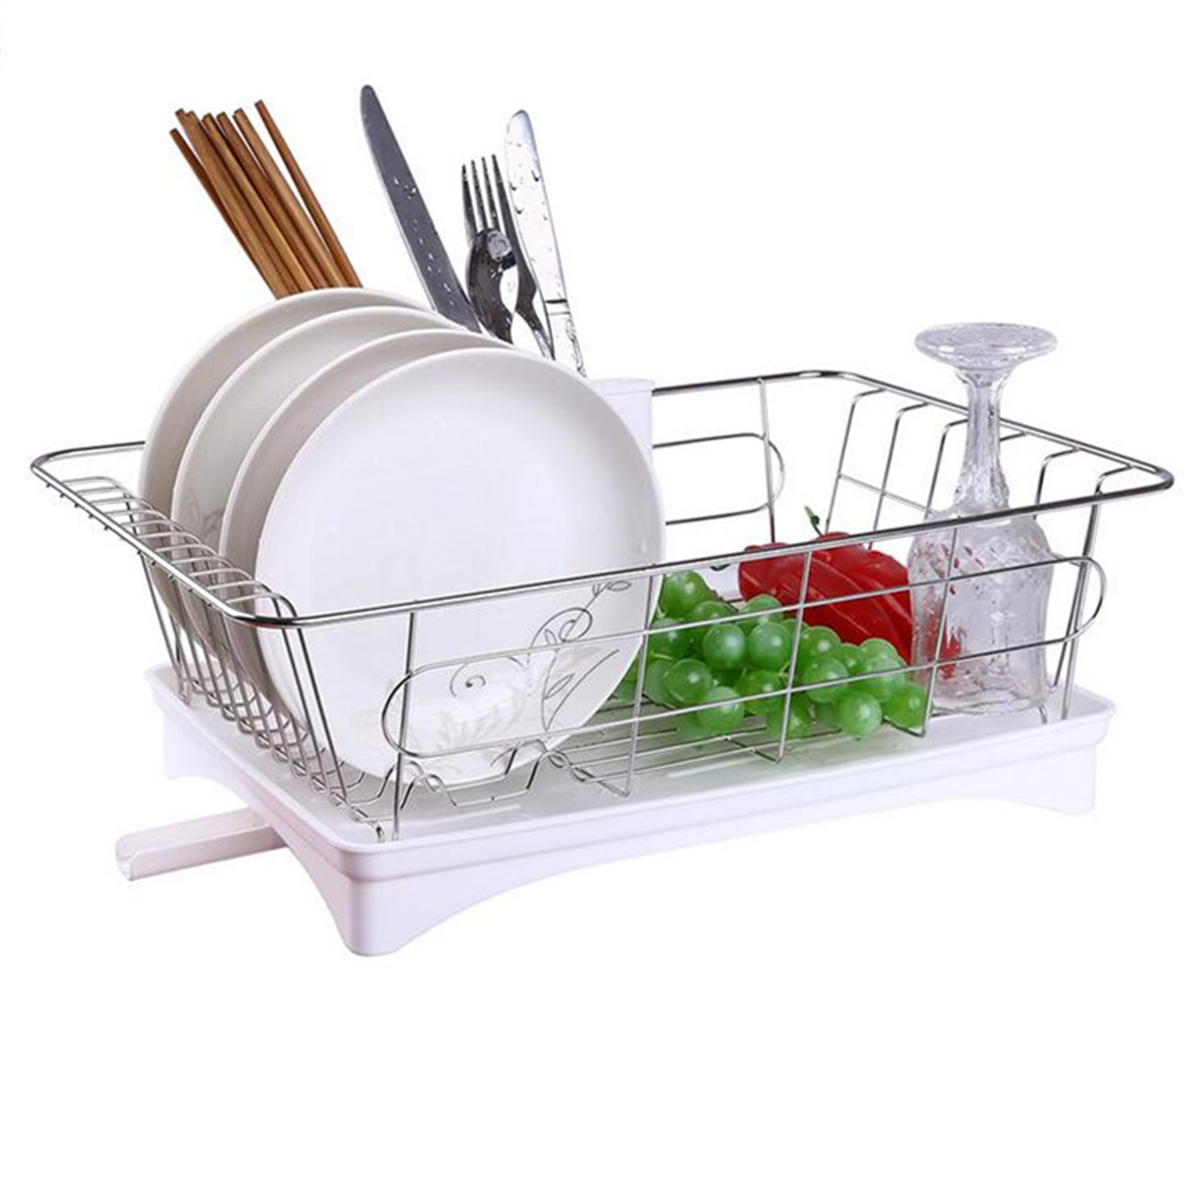 Large Stainless Steel Shelf Kitchen Storage Rack Dish Draining Tray Cutlery Holder